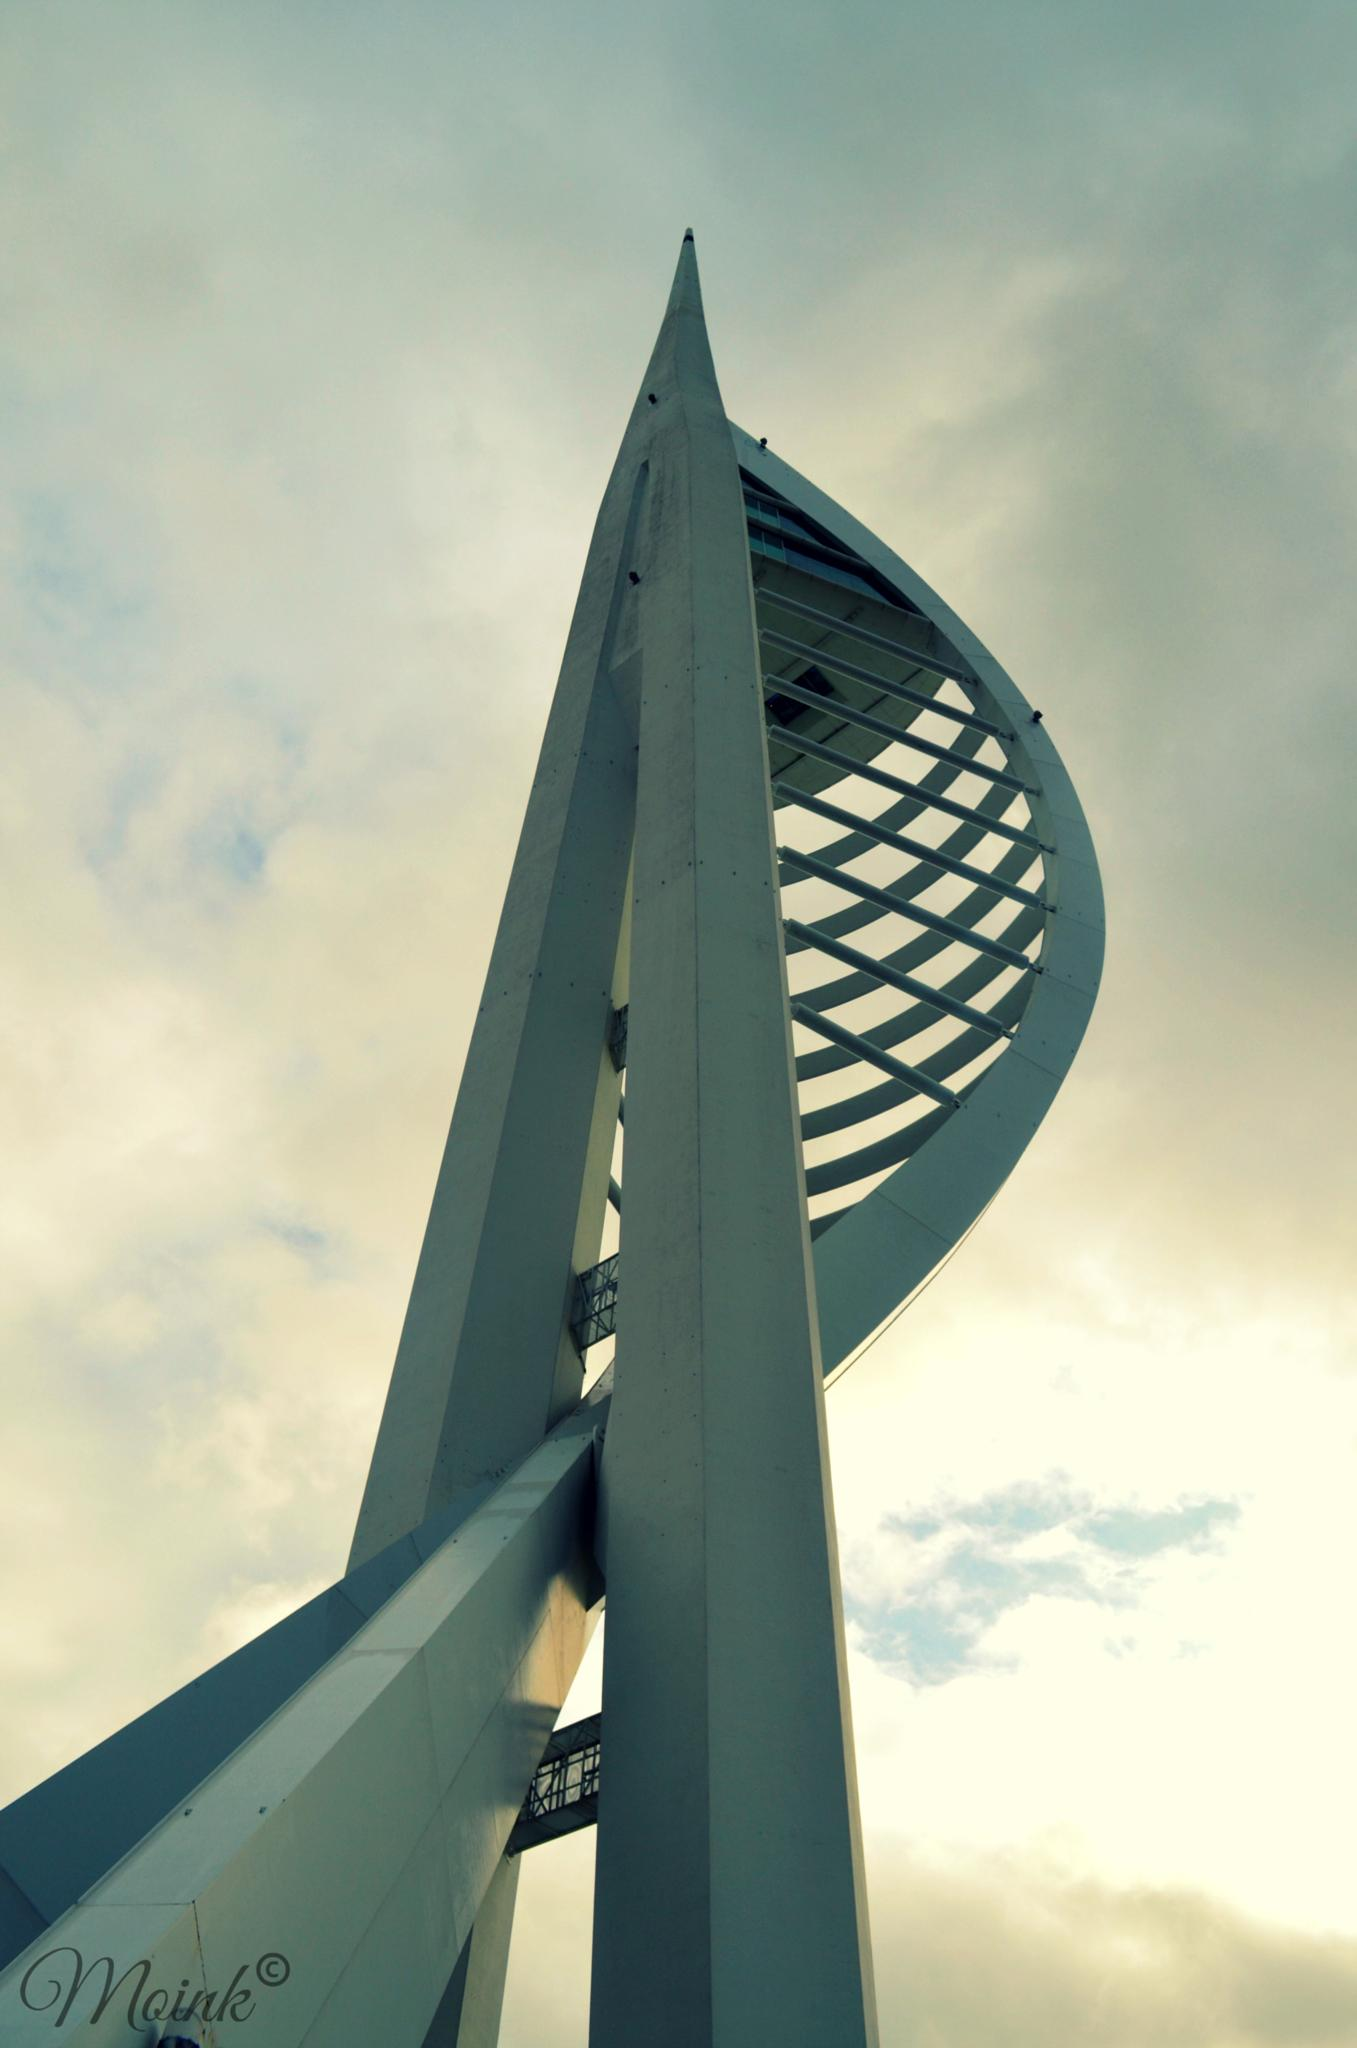 Spinnaker Tower by Michelangelo Macanas